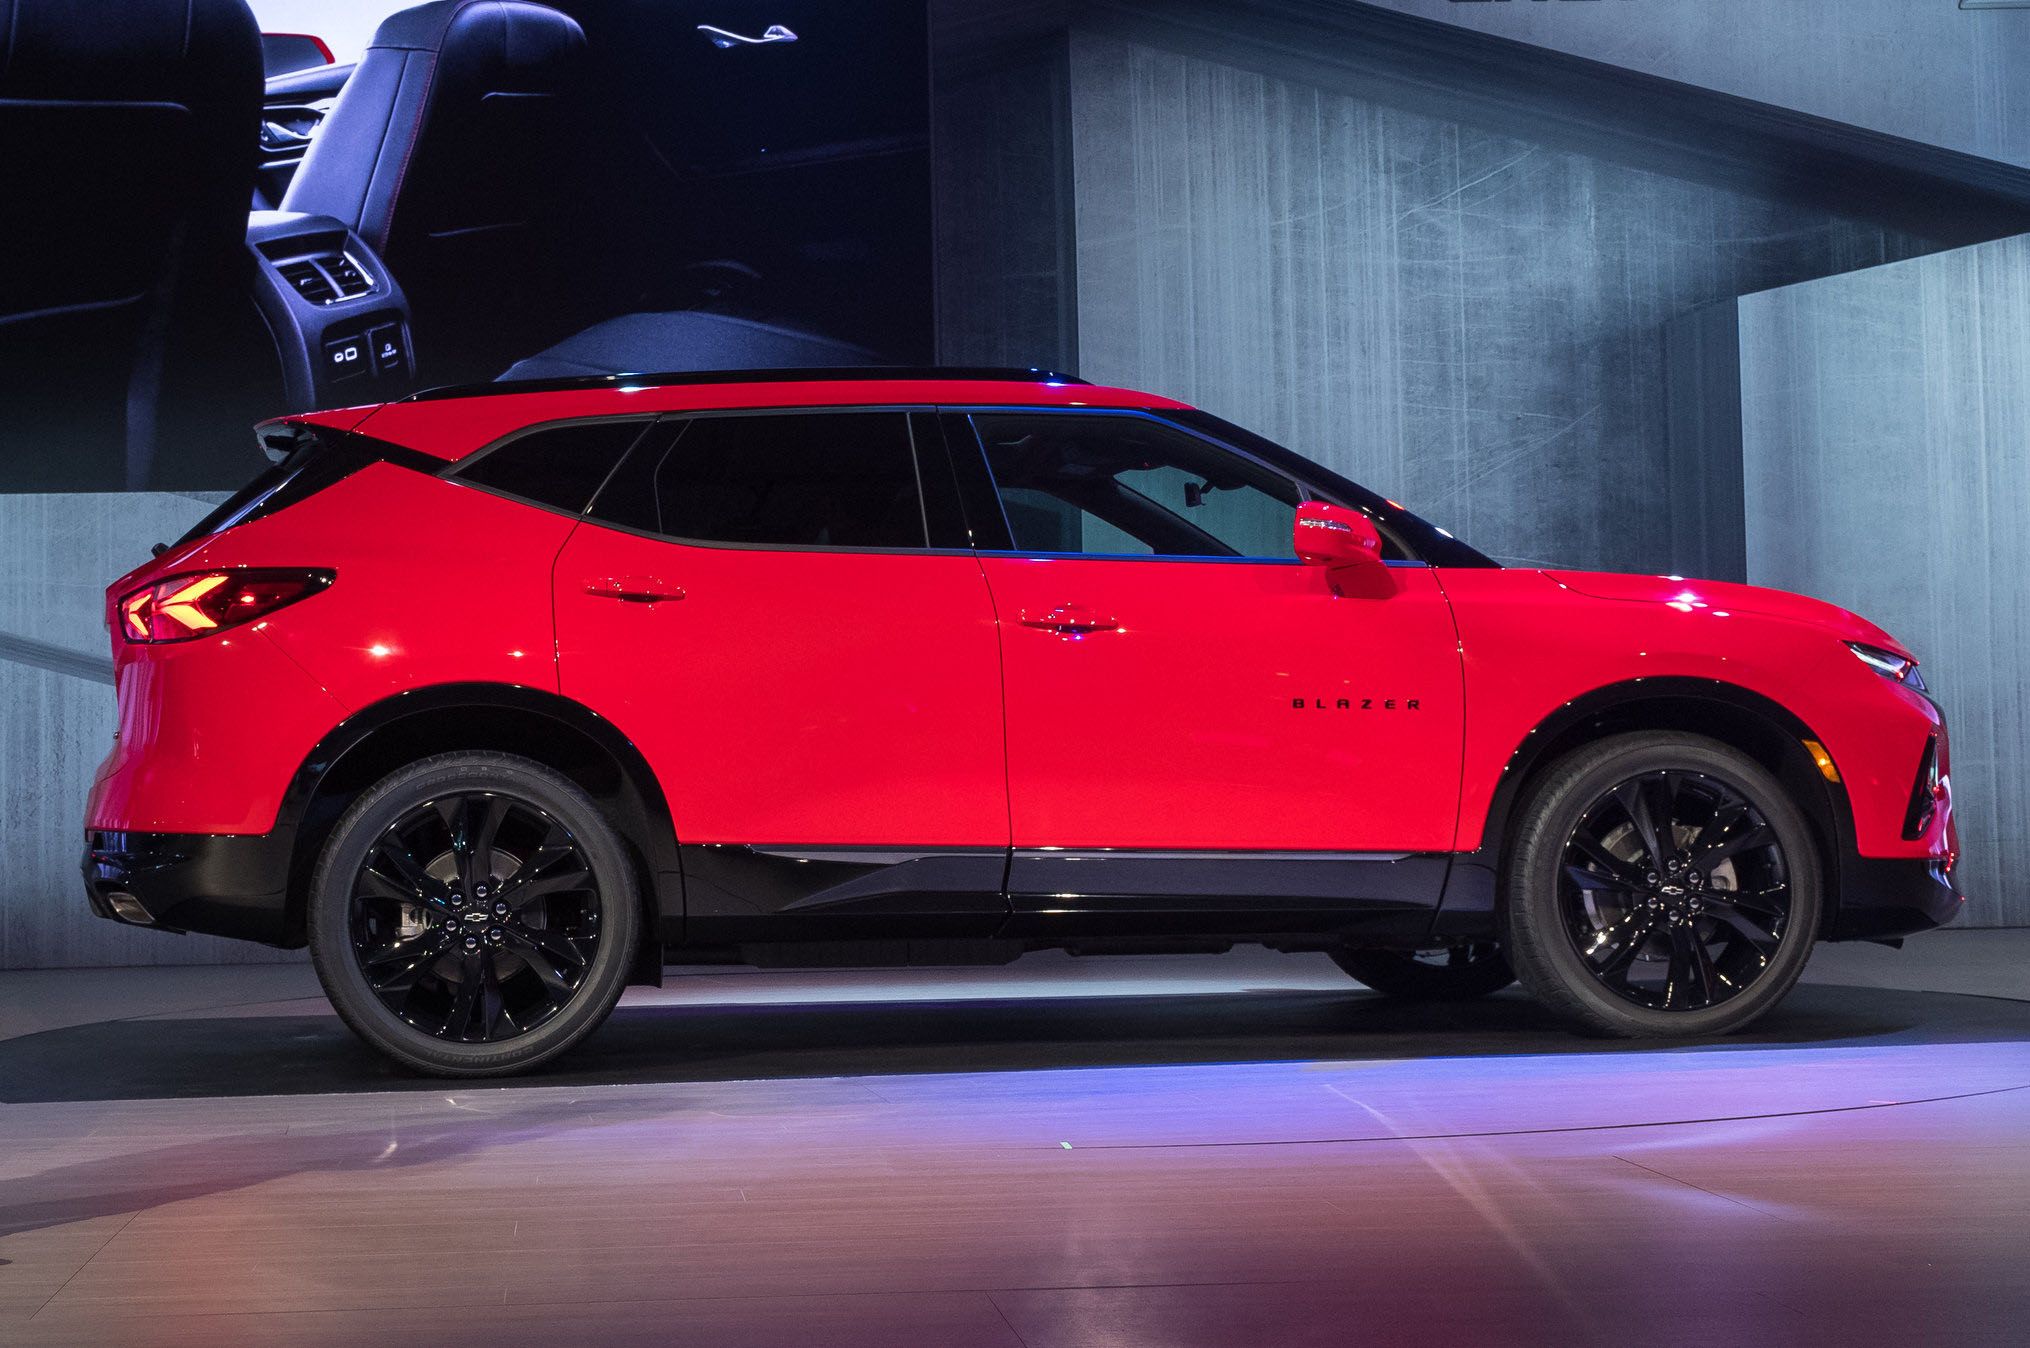 2019 Chevrolet Blazer Priced from $29,995 | Automobile ...